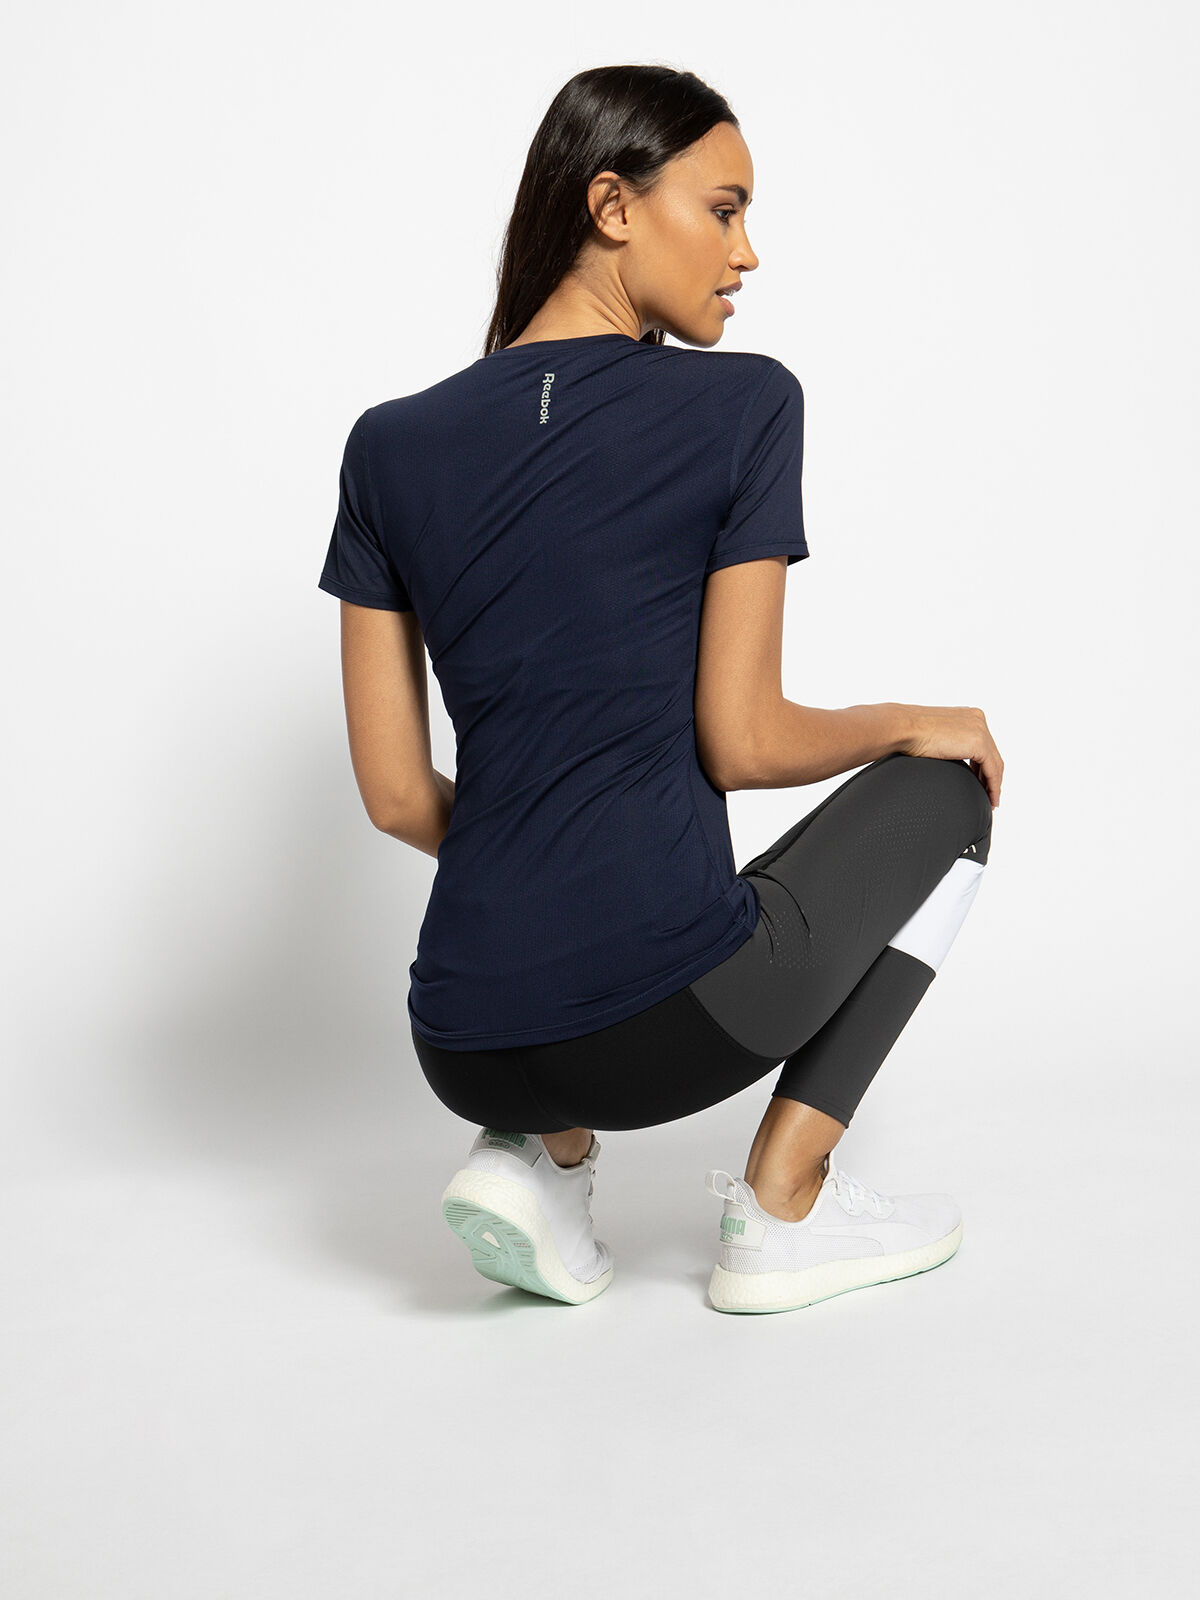 Double pack of practical high-performance tops